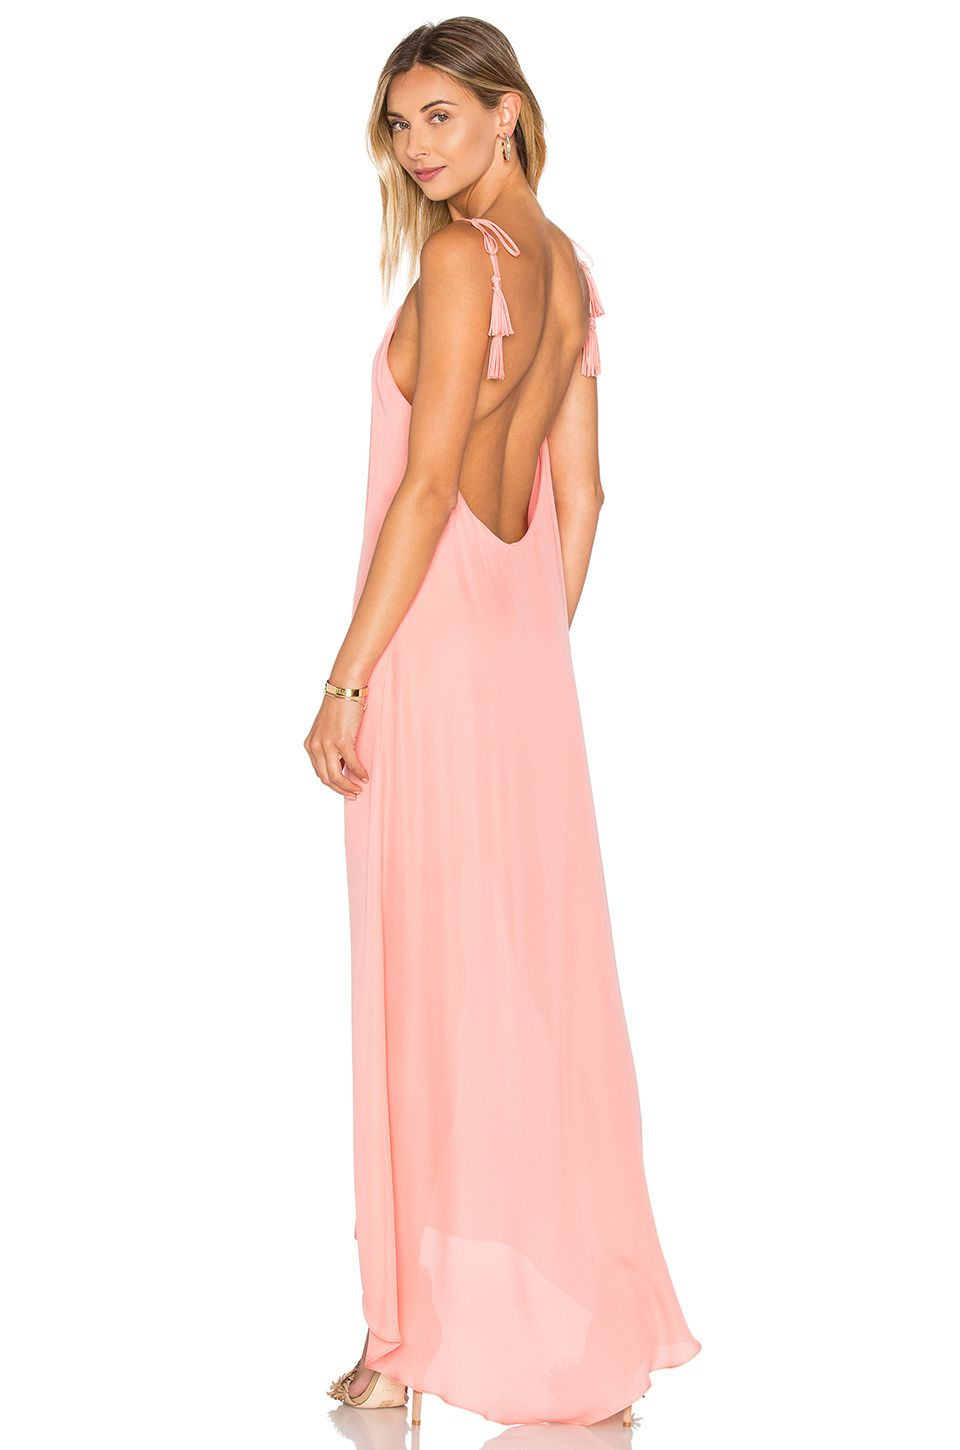 REVOLVE Maid By Yifat Oren Nelli Gown by Rory Beca in Coral $119 ...